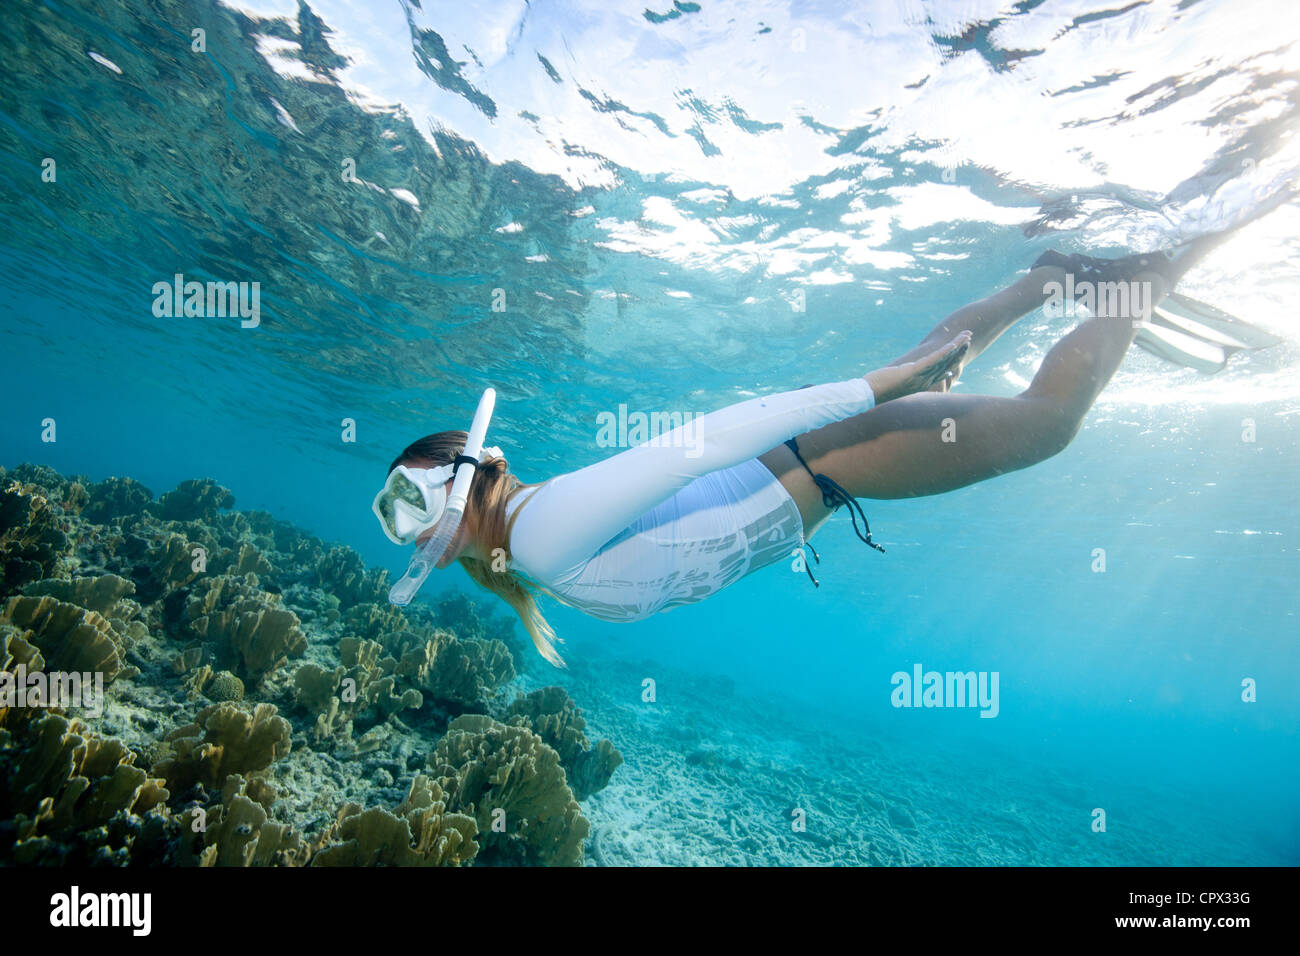 Snorkeler views coral reef - Stock Image